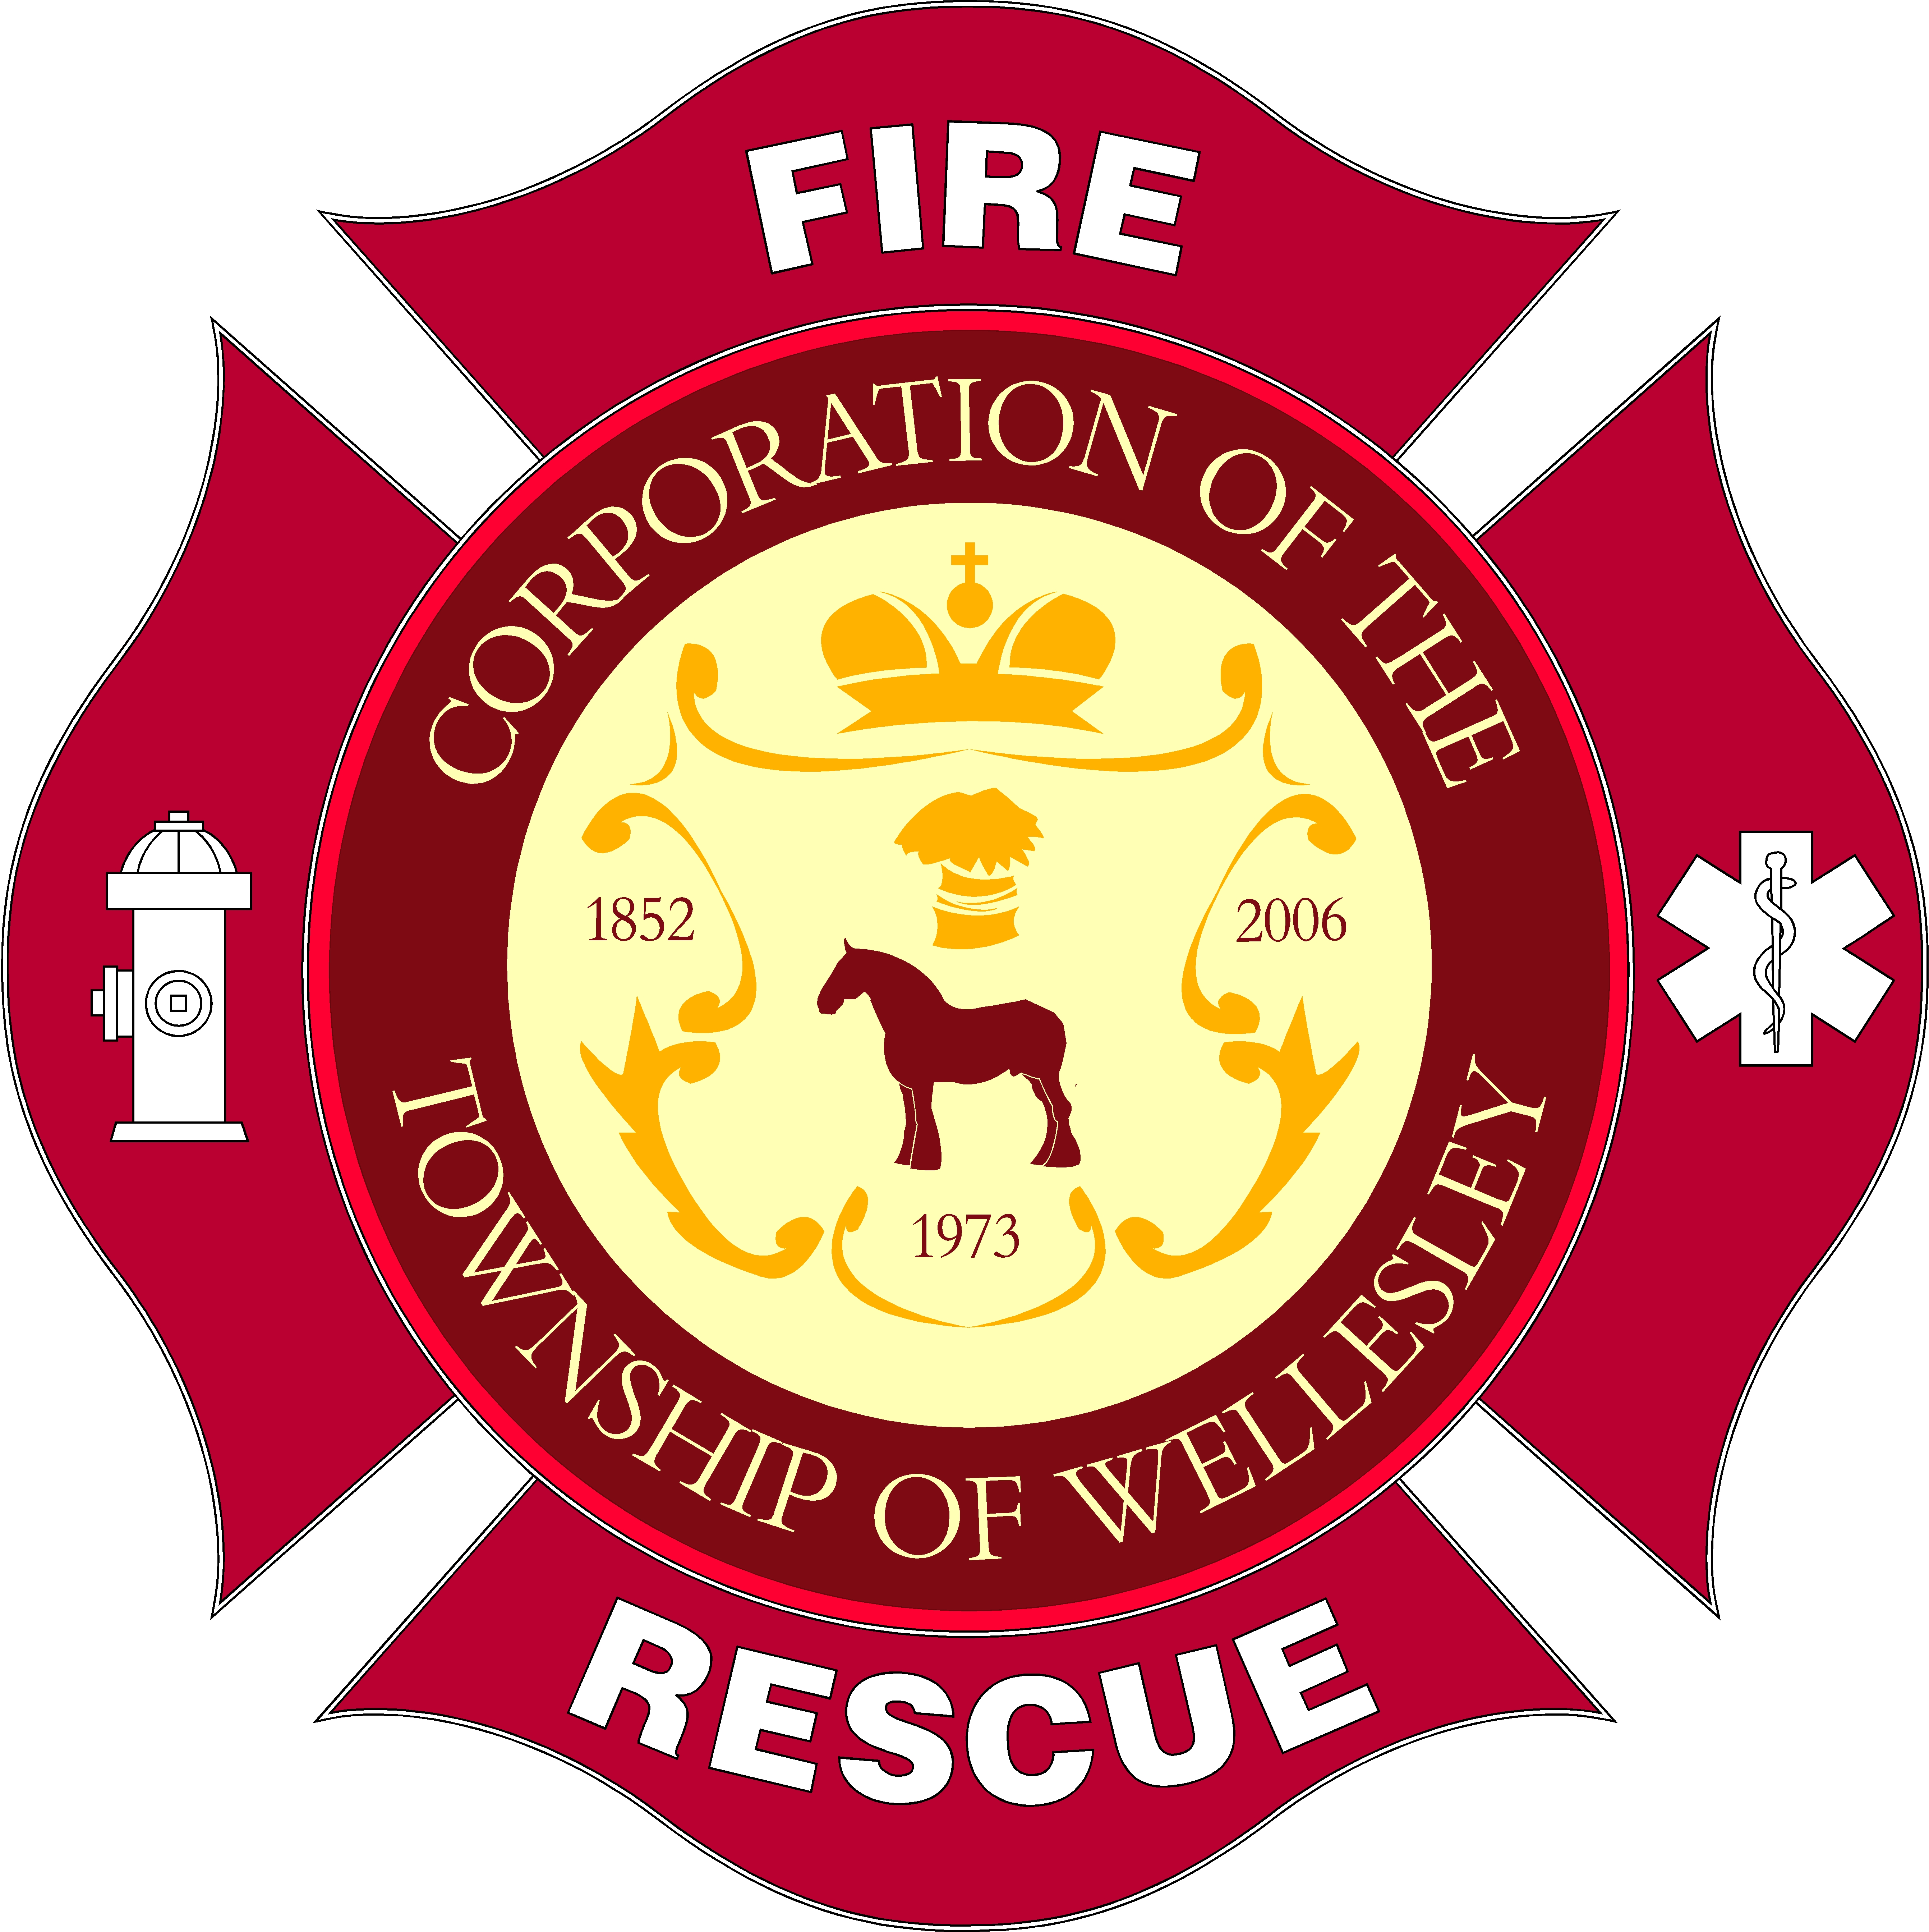 Image of the Wellesley Fire Rescue crest